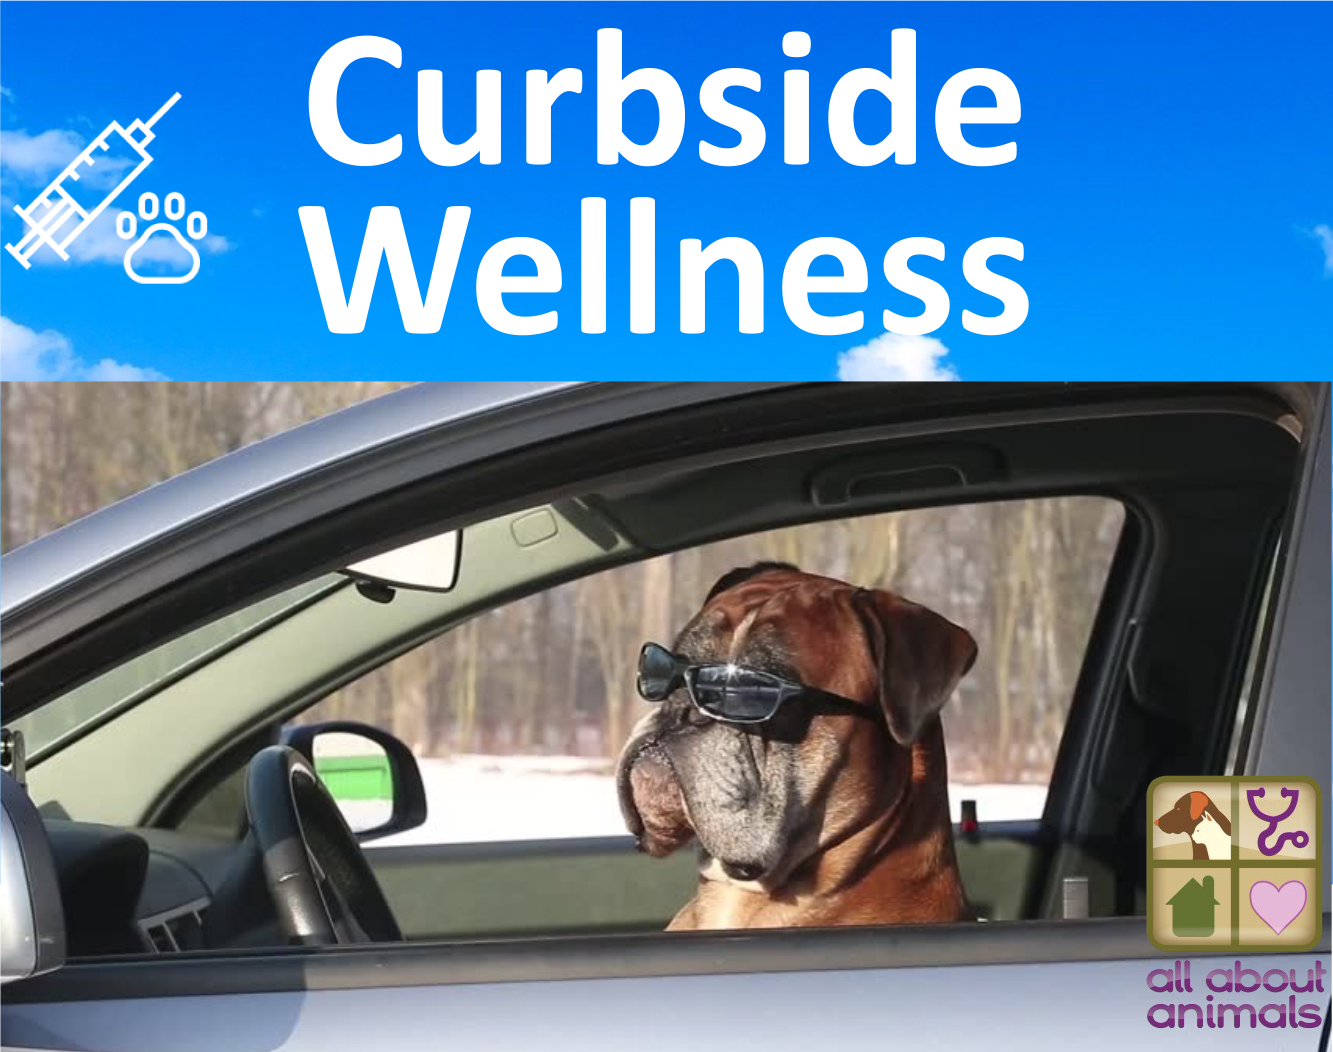 Curbside Wellness